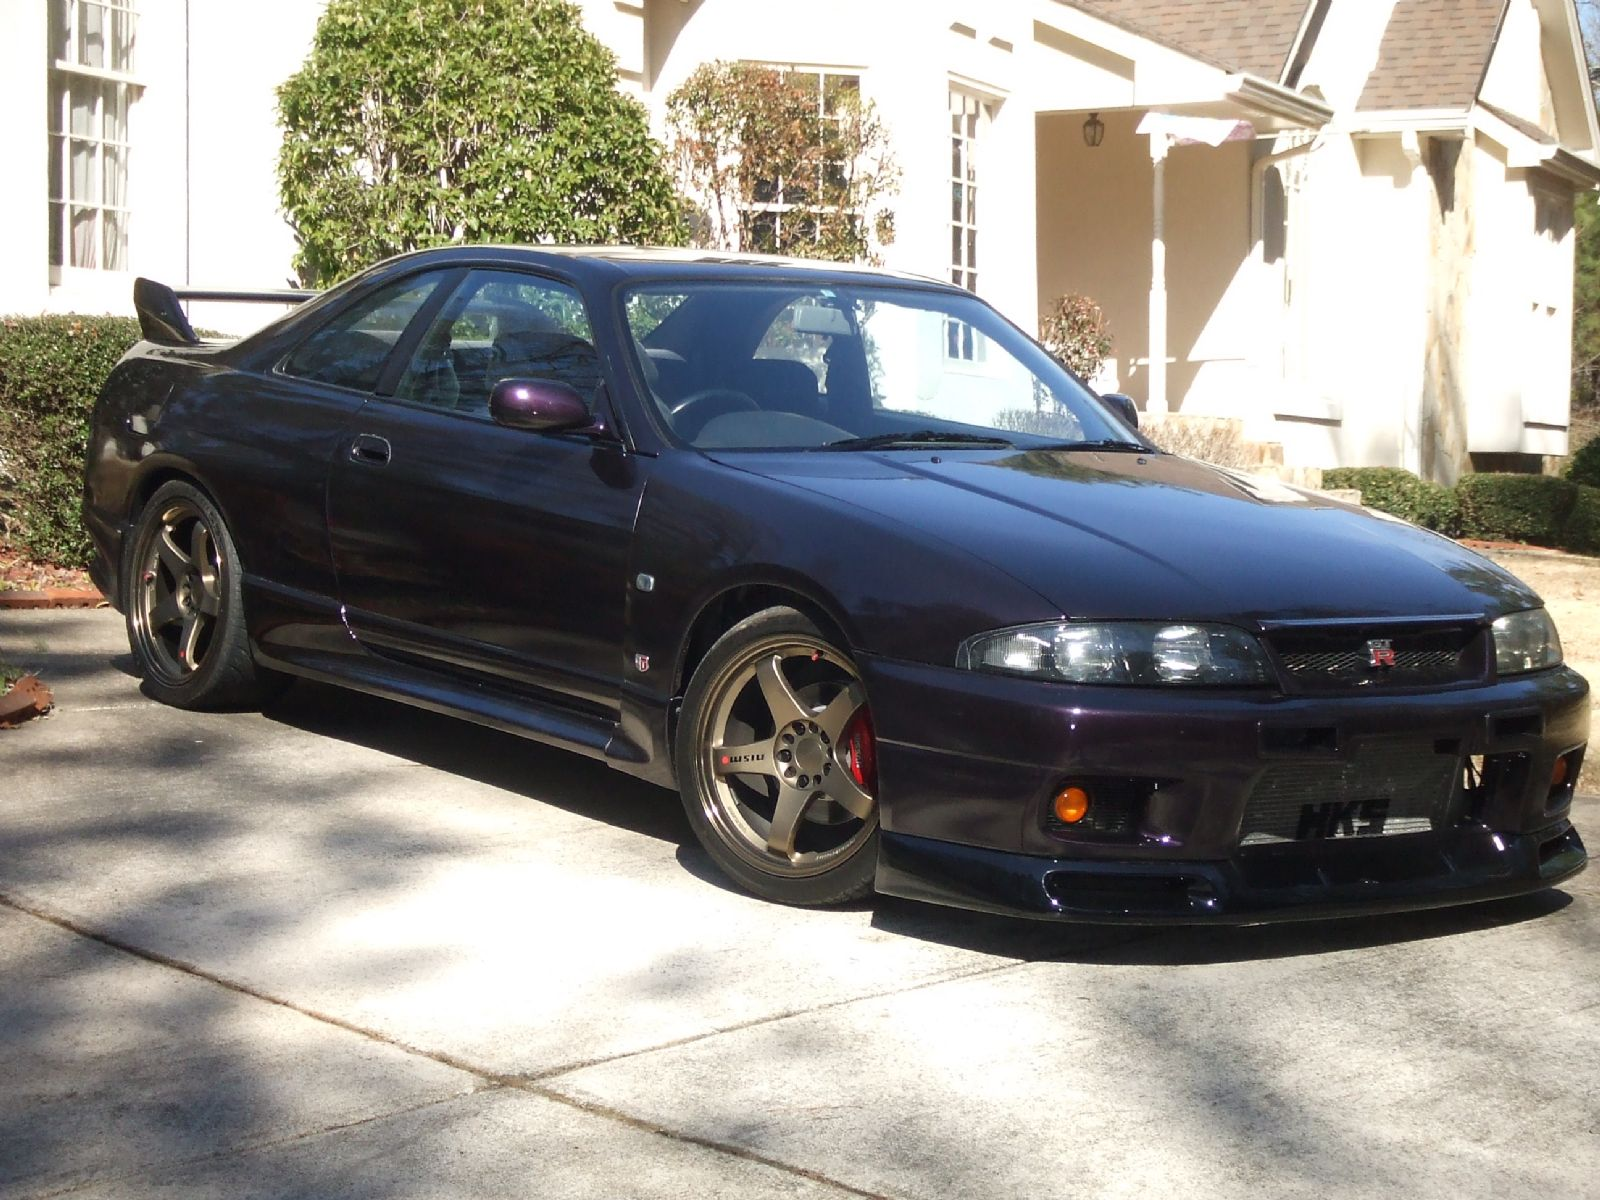 1993 Nissan Skyline R33 Gts T W Gtr Conv For Sale Macon